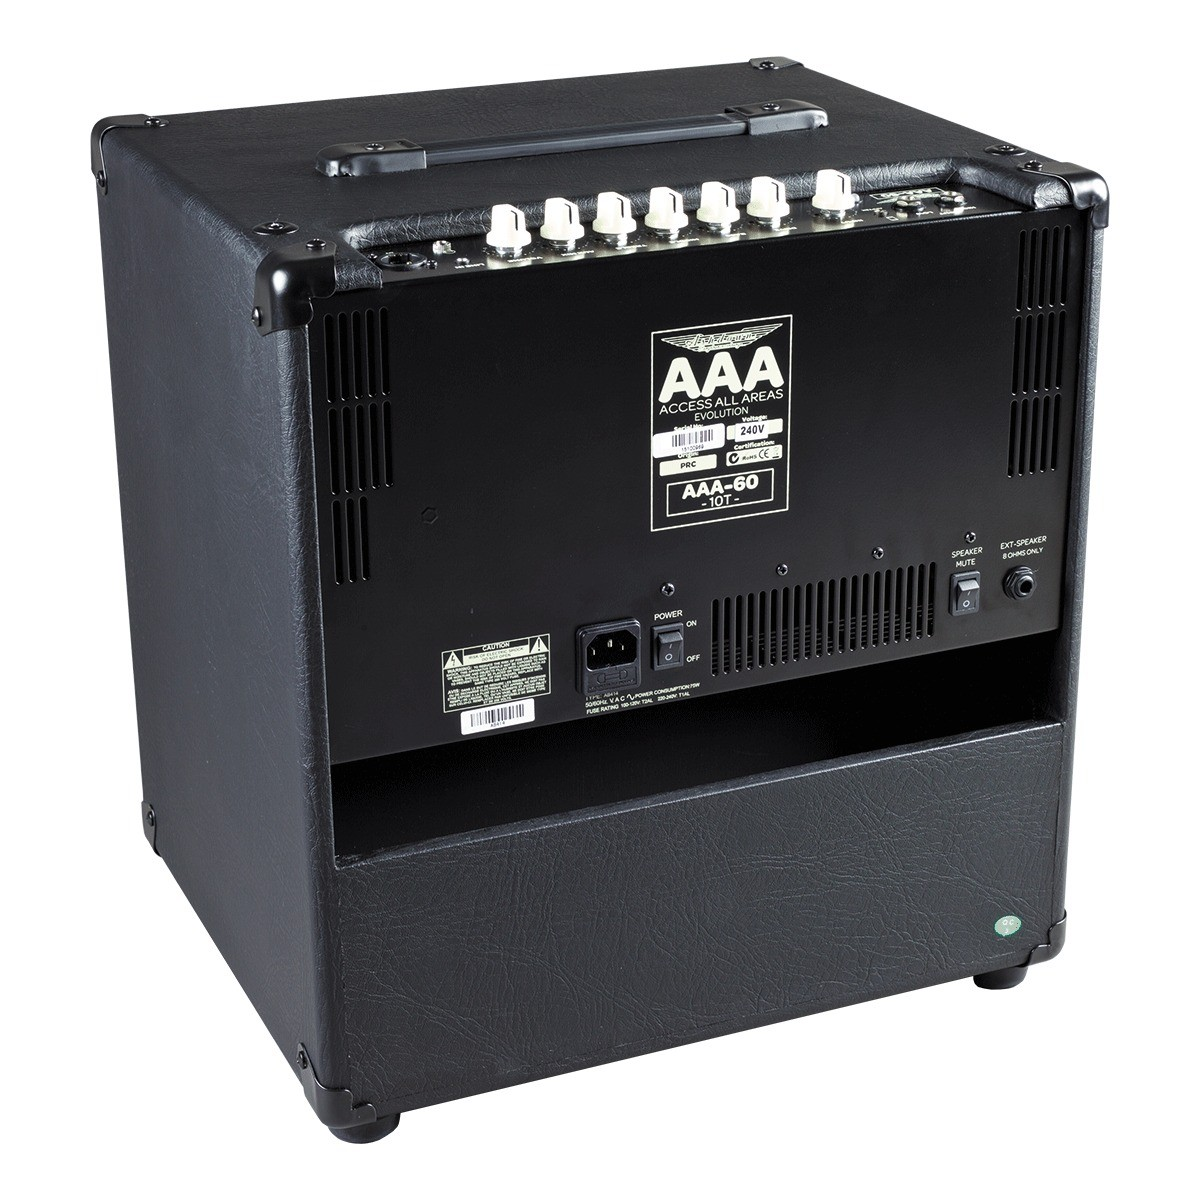 ashdown aaa 60 evo 10t lightweight 60w 1 x 10 bass amp combo at. Black Bedroom Furniture Sets. Home Design Ideas